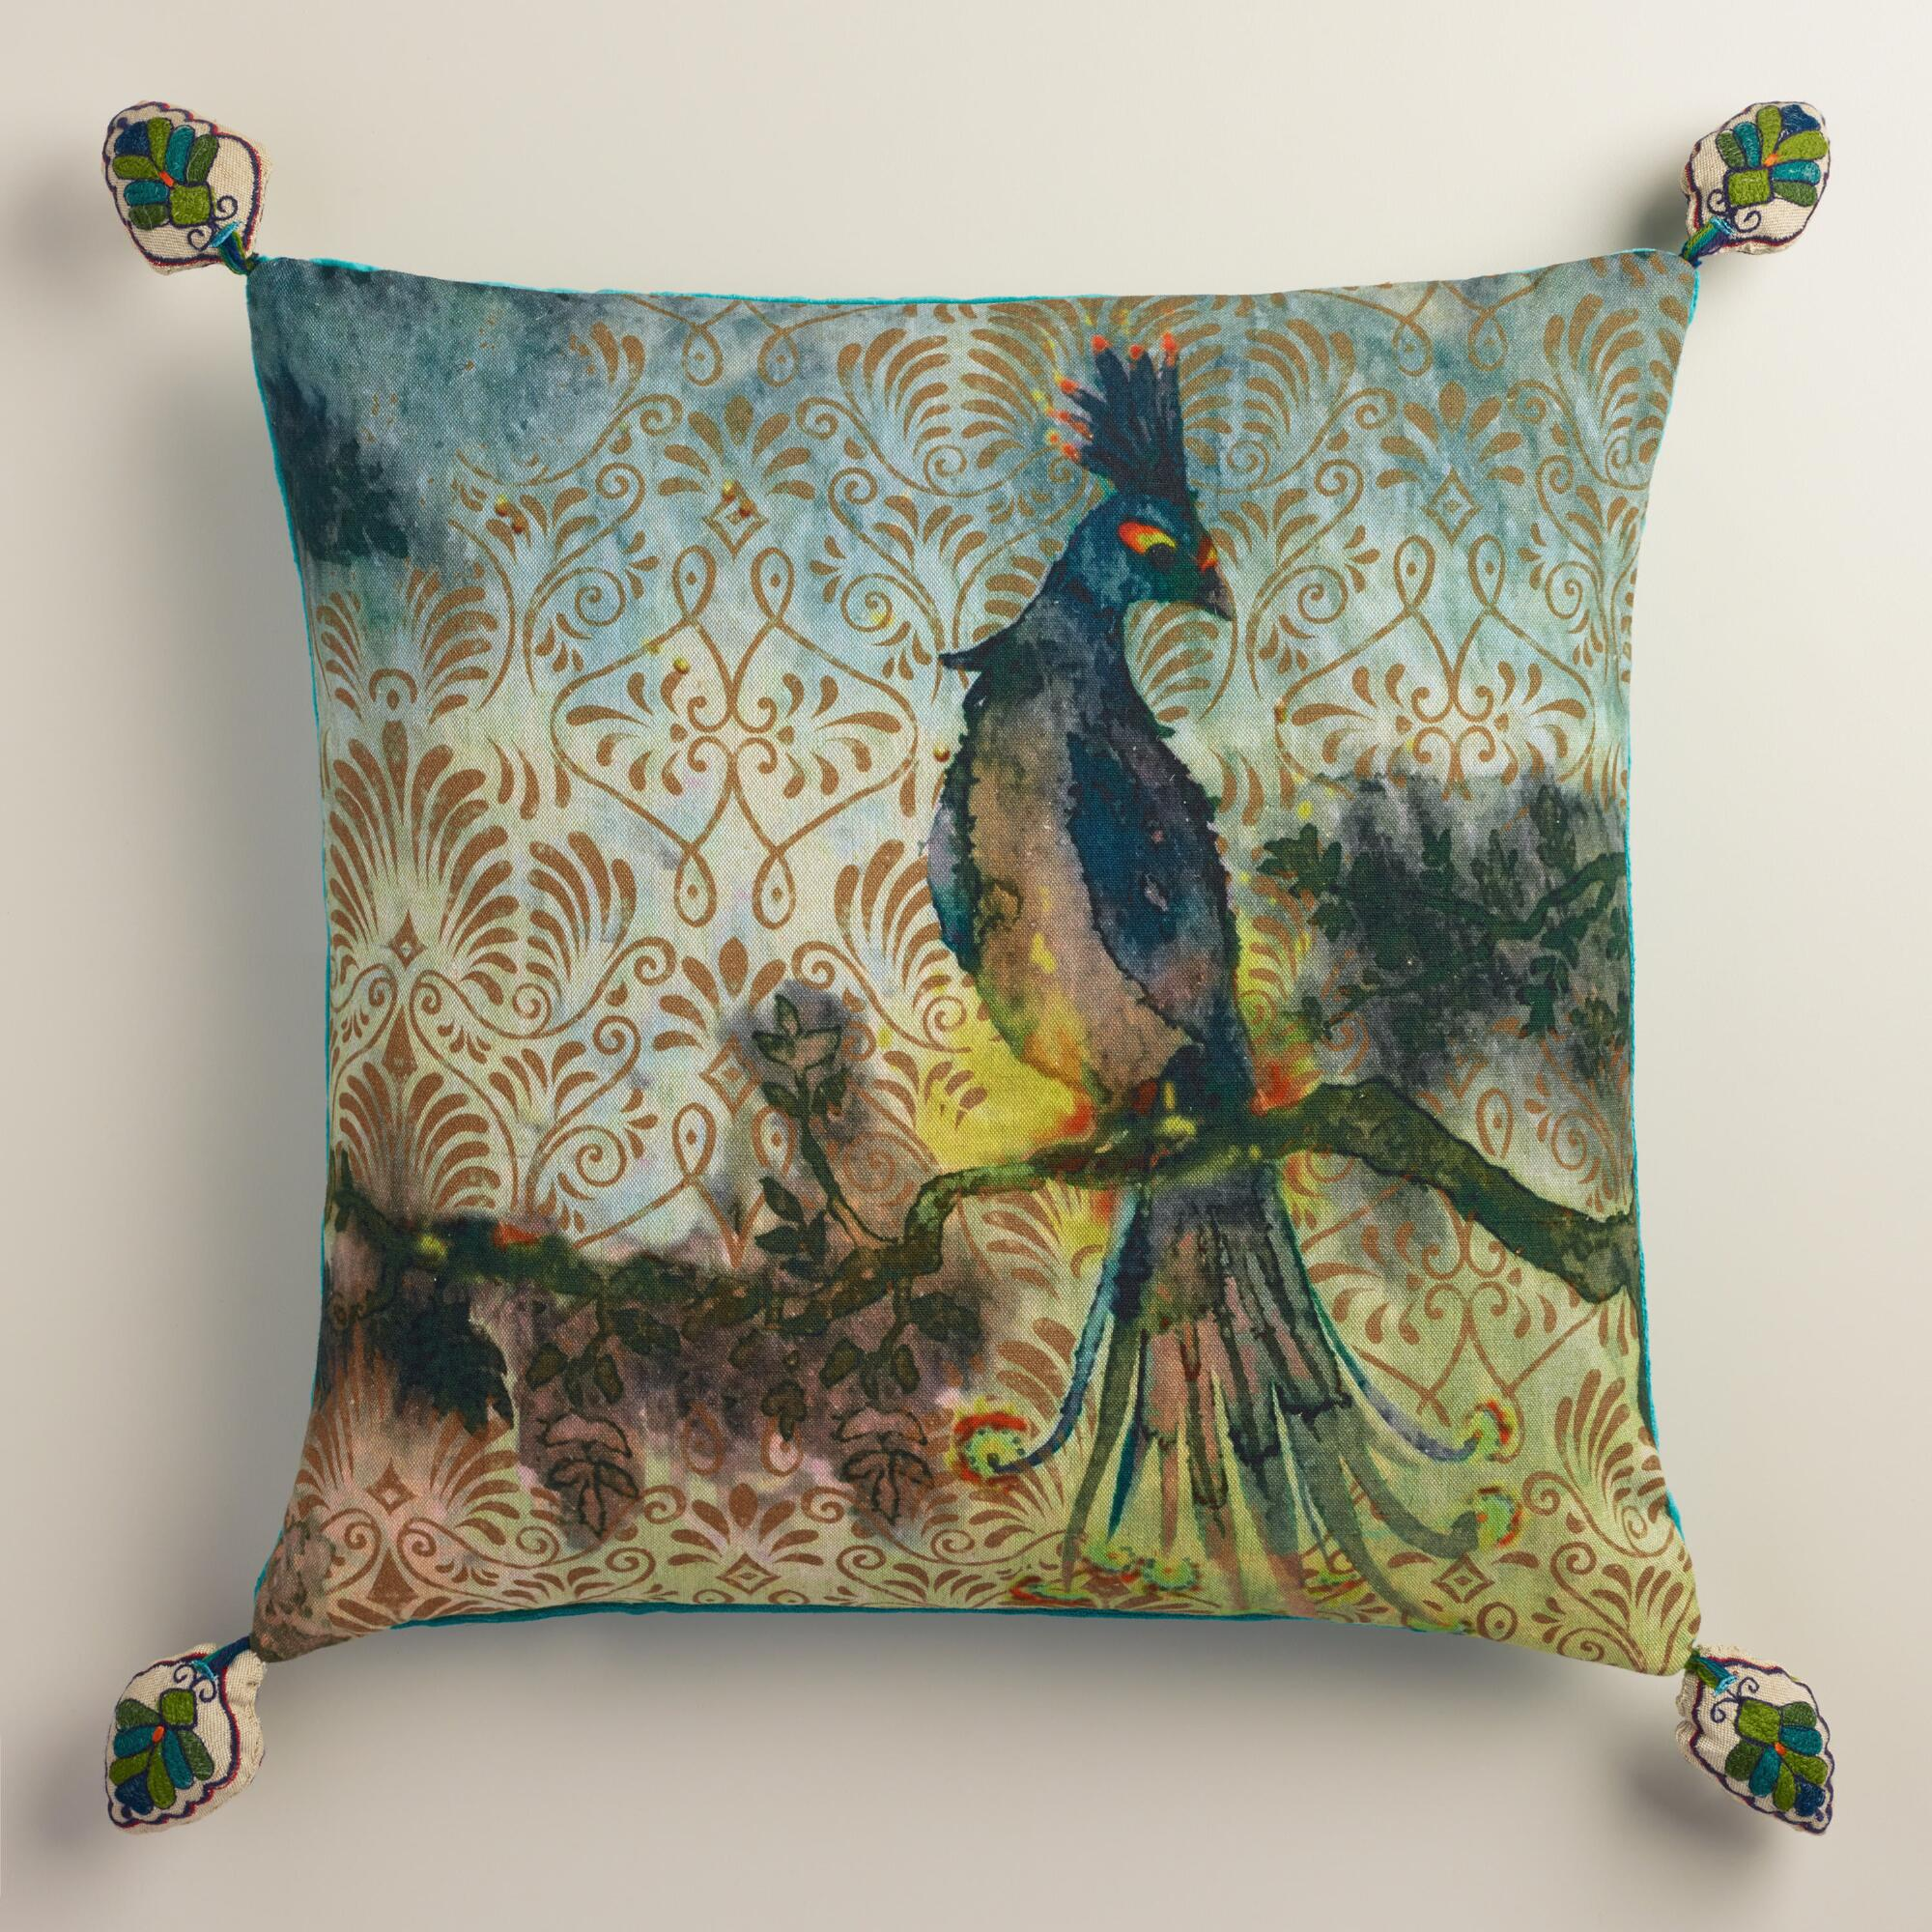 Throw Pillow Peacock : Peacock Print Cotton Throw Pillow World Market